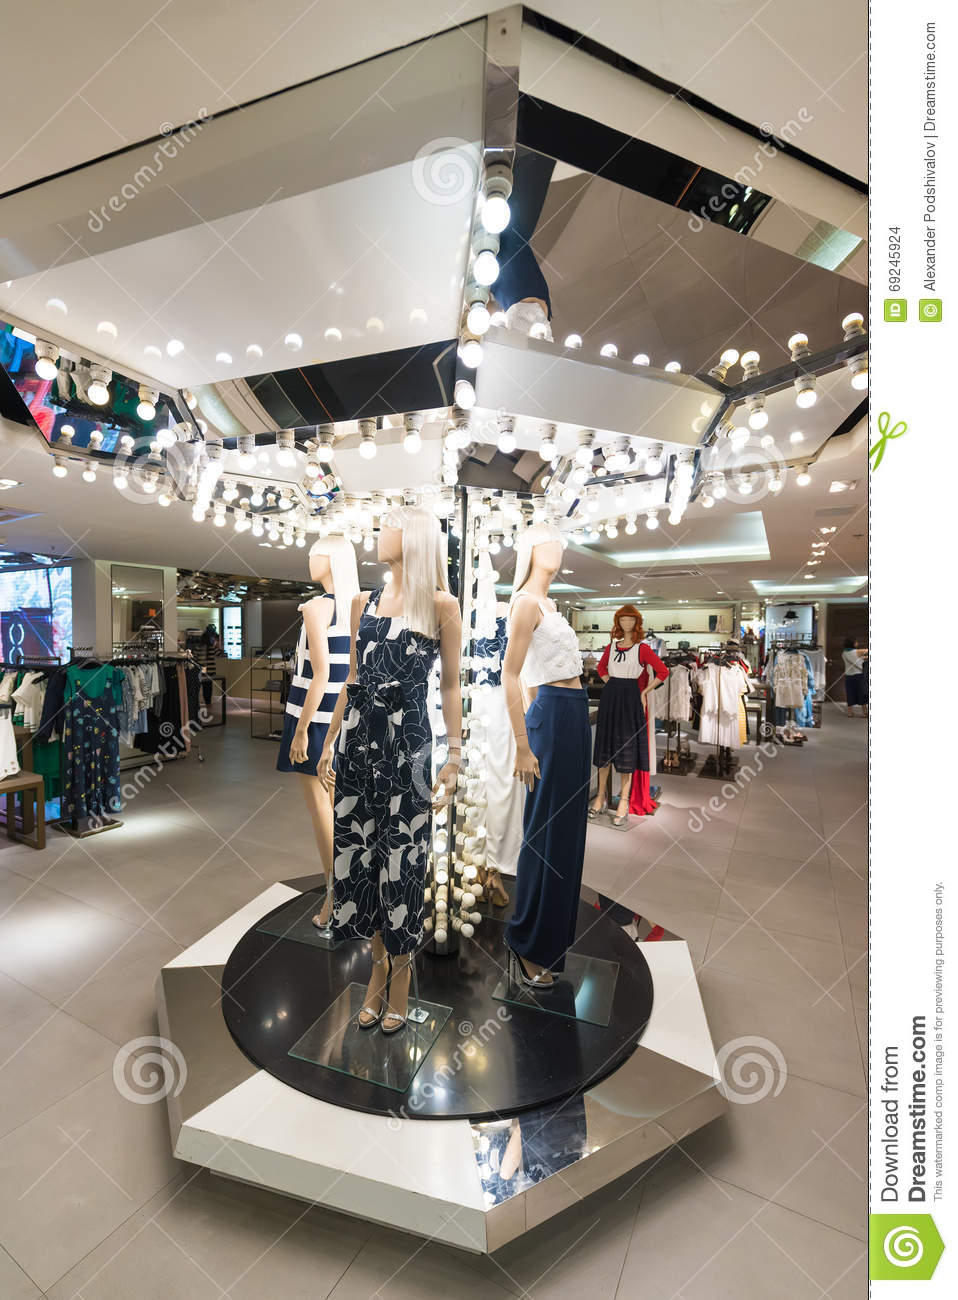 e40ca09554 BANGKOK - MARCH 17, 2016 : Unidentified people choose goods at a ladies  clothing store in the Siam Center. It was built in 1973 and was one of  Bangkoks ...